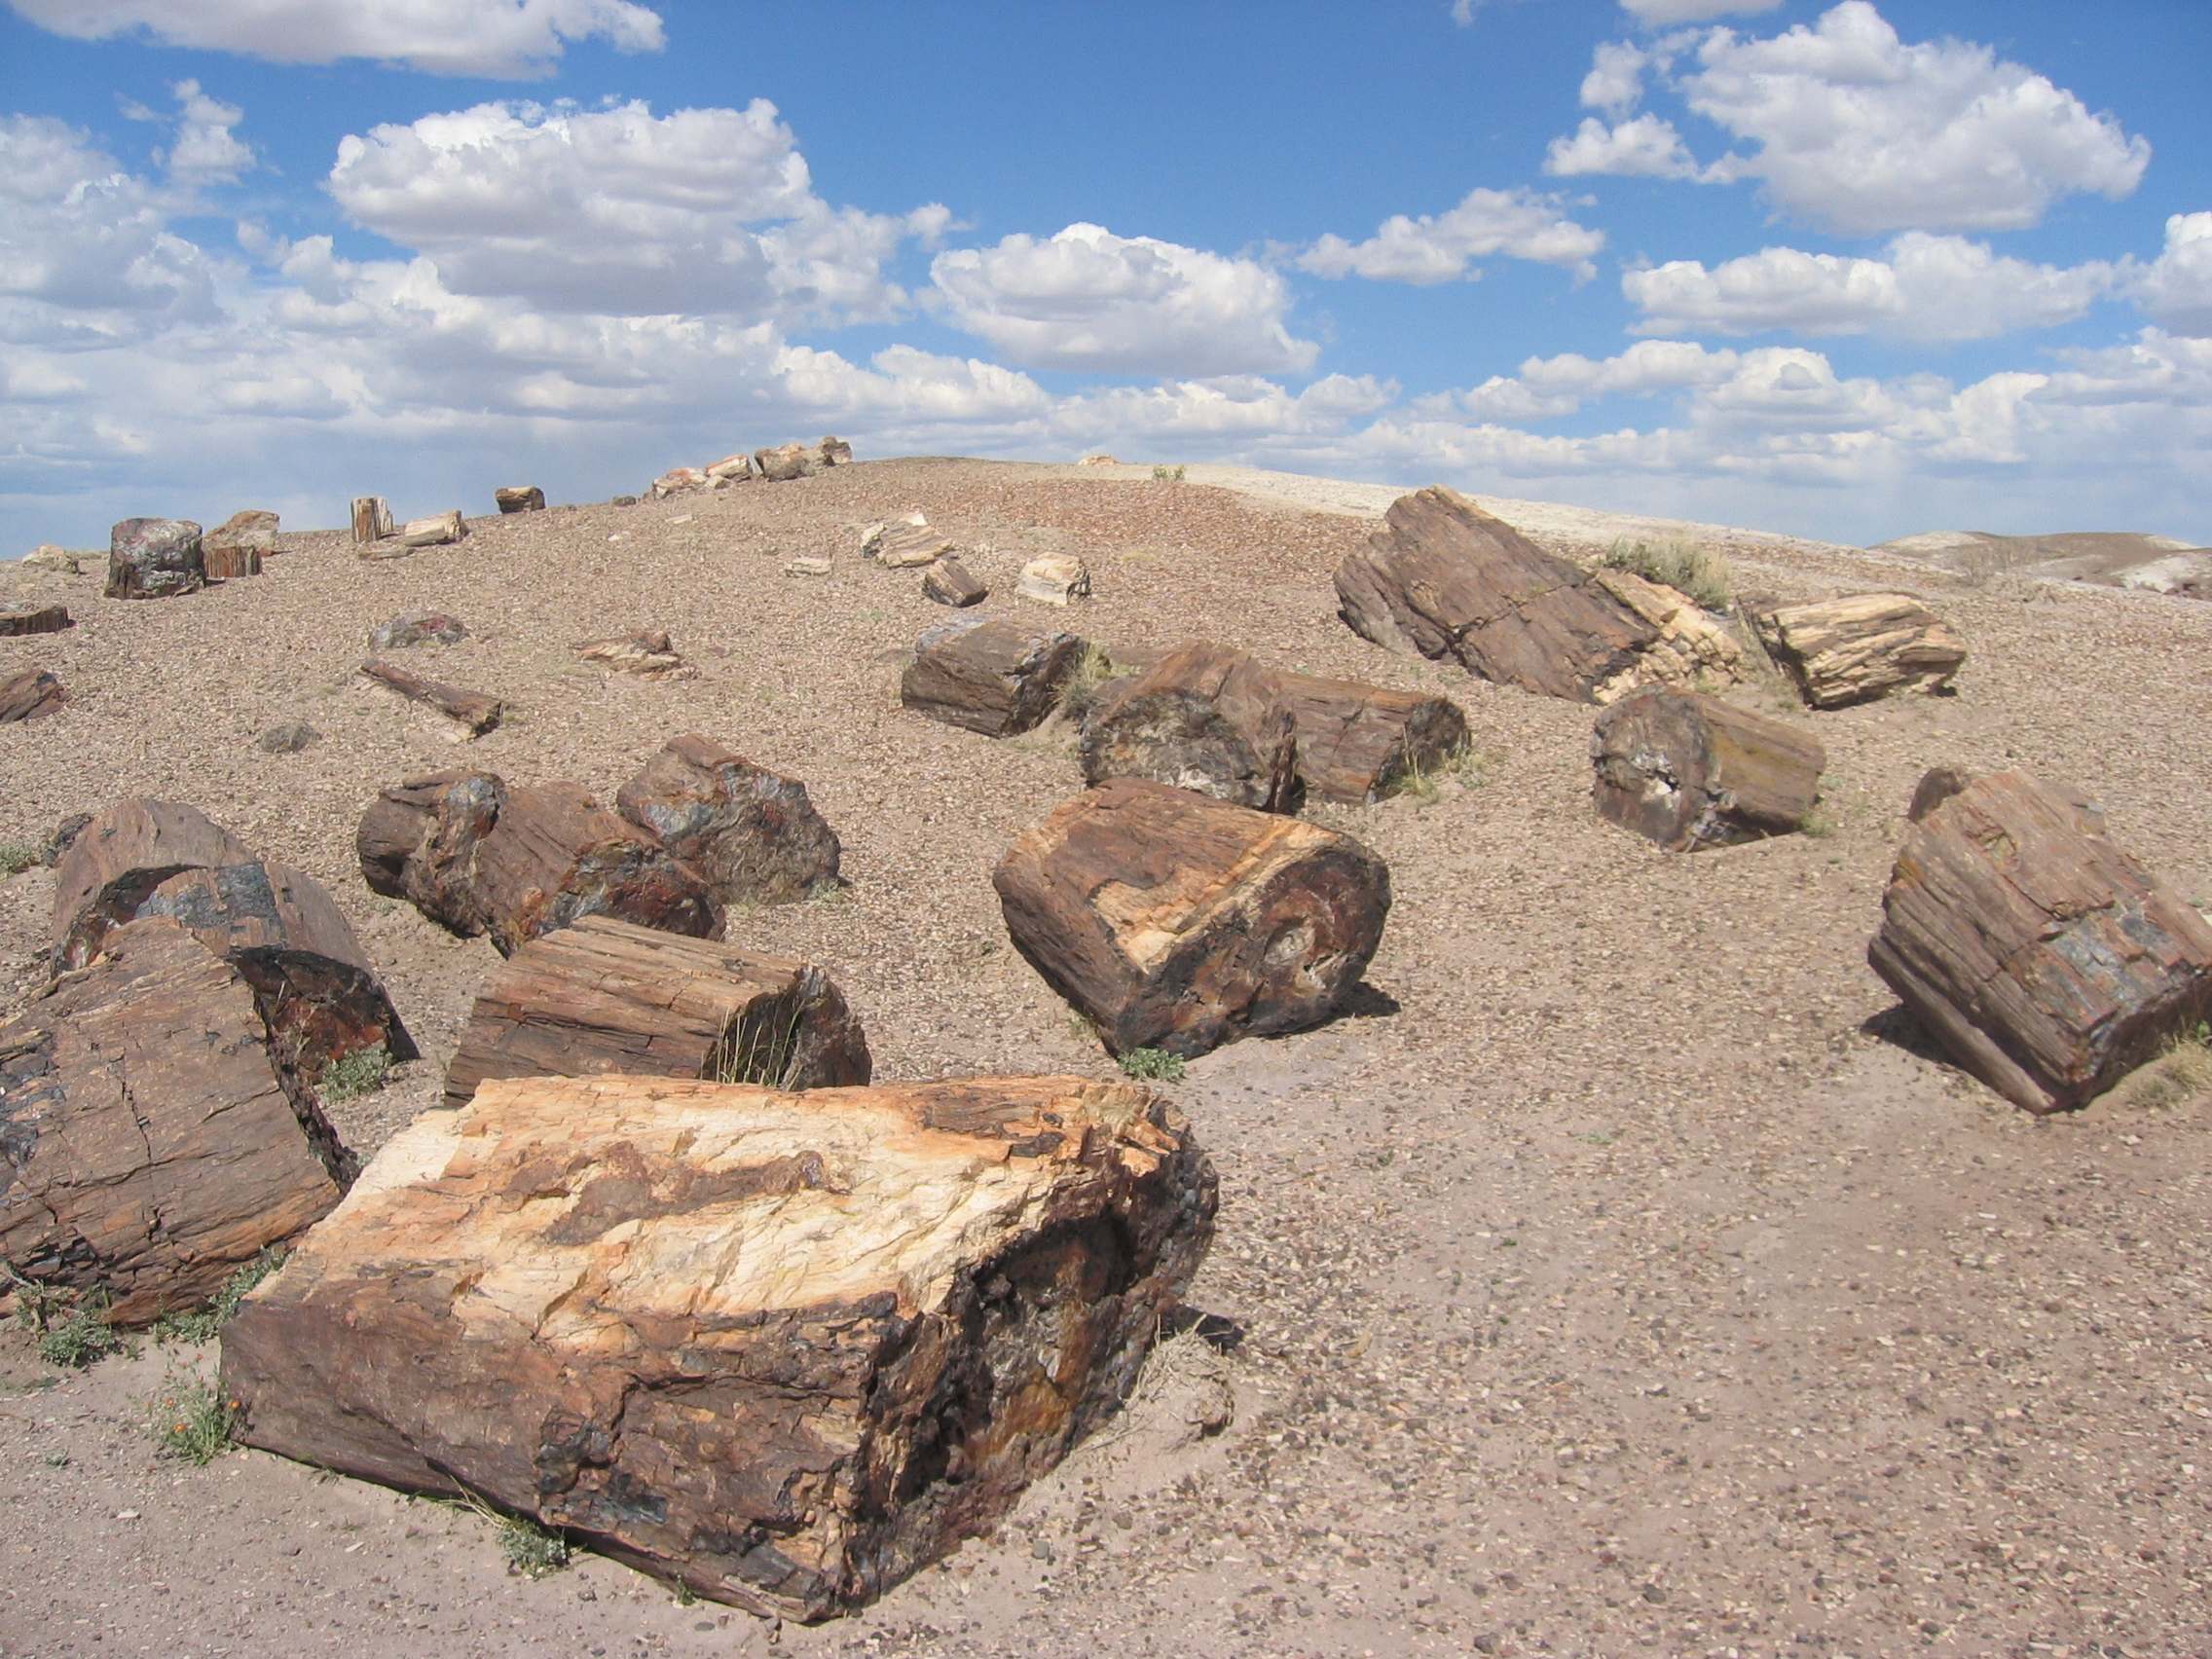 petrified forest natl pk dating site Book your tickets online for painted desert, petrified forest national park: see 2,237 reviews, articles, and 2,050 photos of painted desert, ranked no2 on tripadvisor among 17 attractions in petrified forest national park.